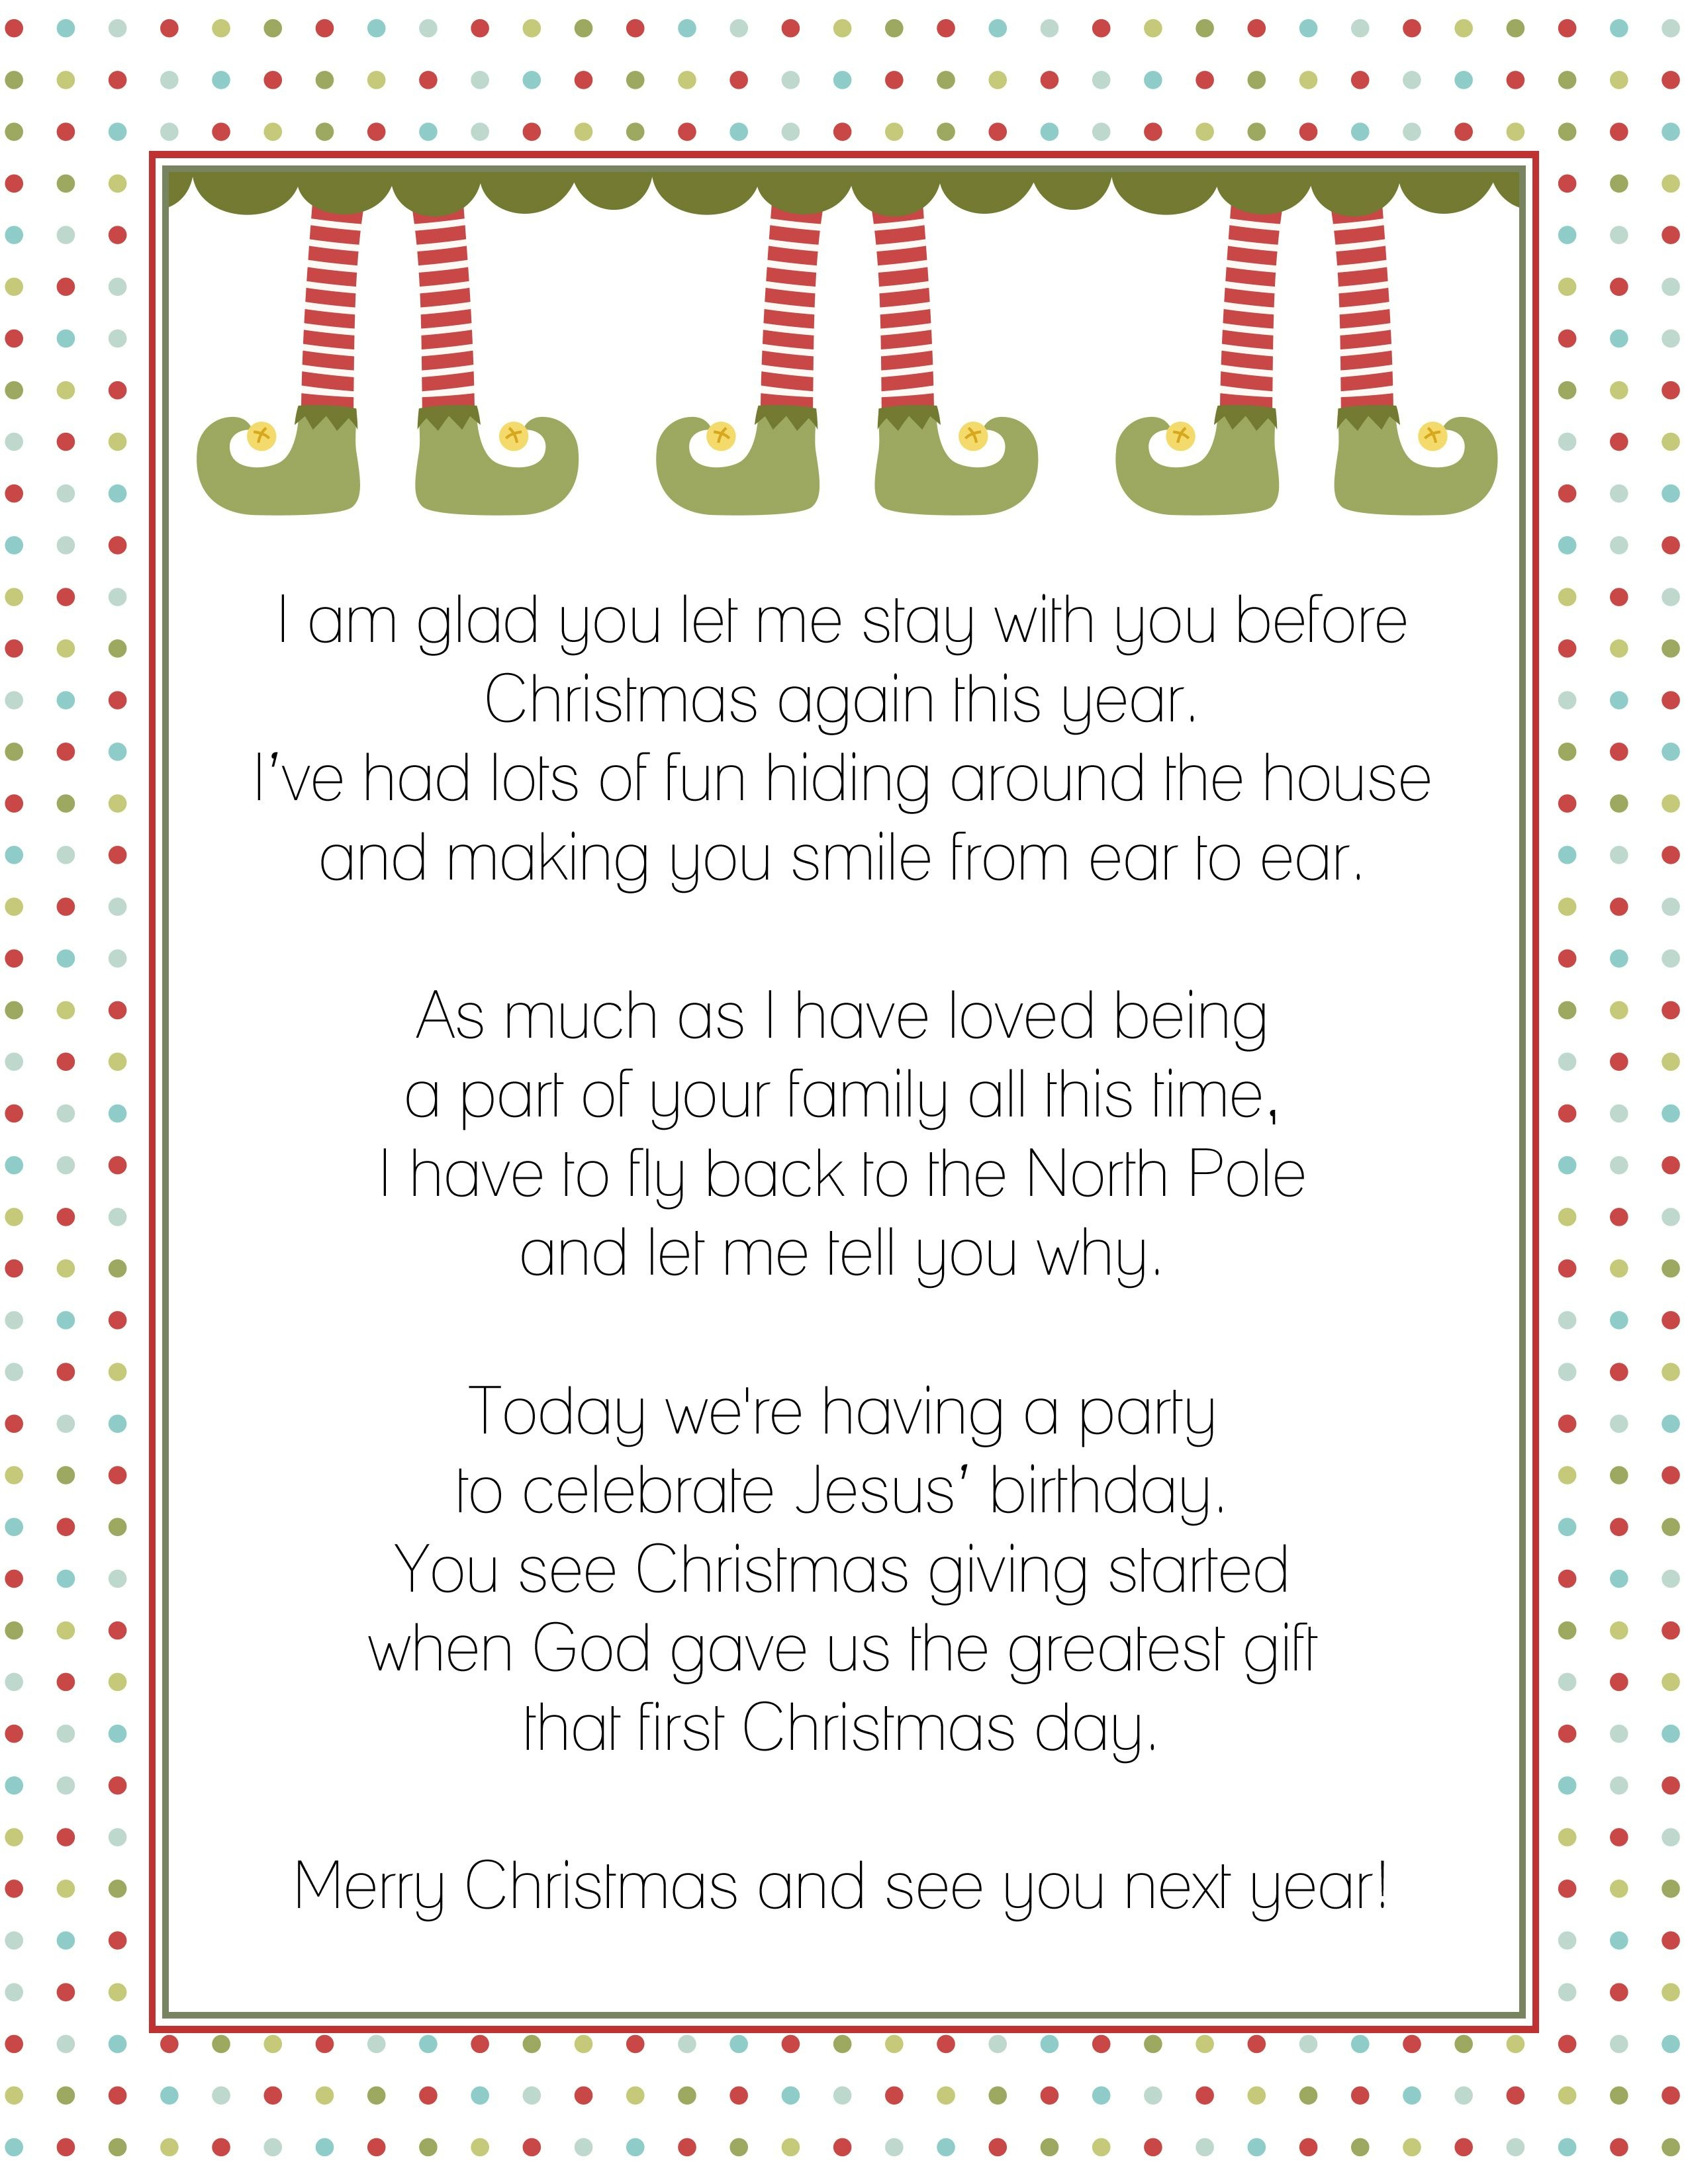 Goodbye Letter From The Elf On A Shelf   Christmas!   Elf Letters - Goodbye Letter From Elf On The Shelf Free Printable